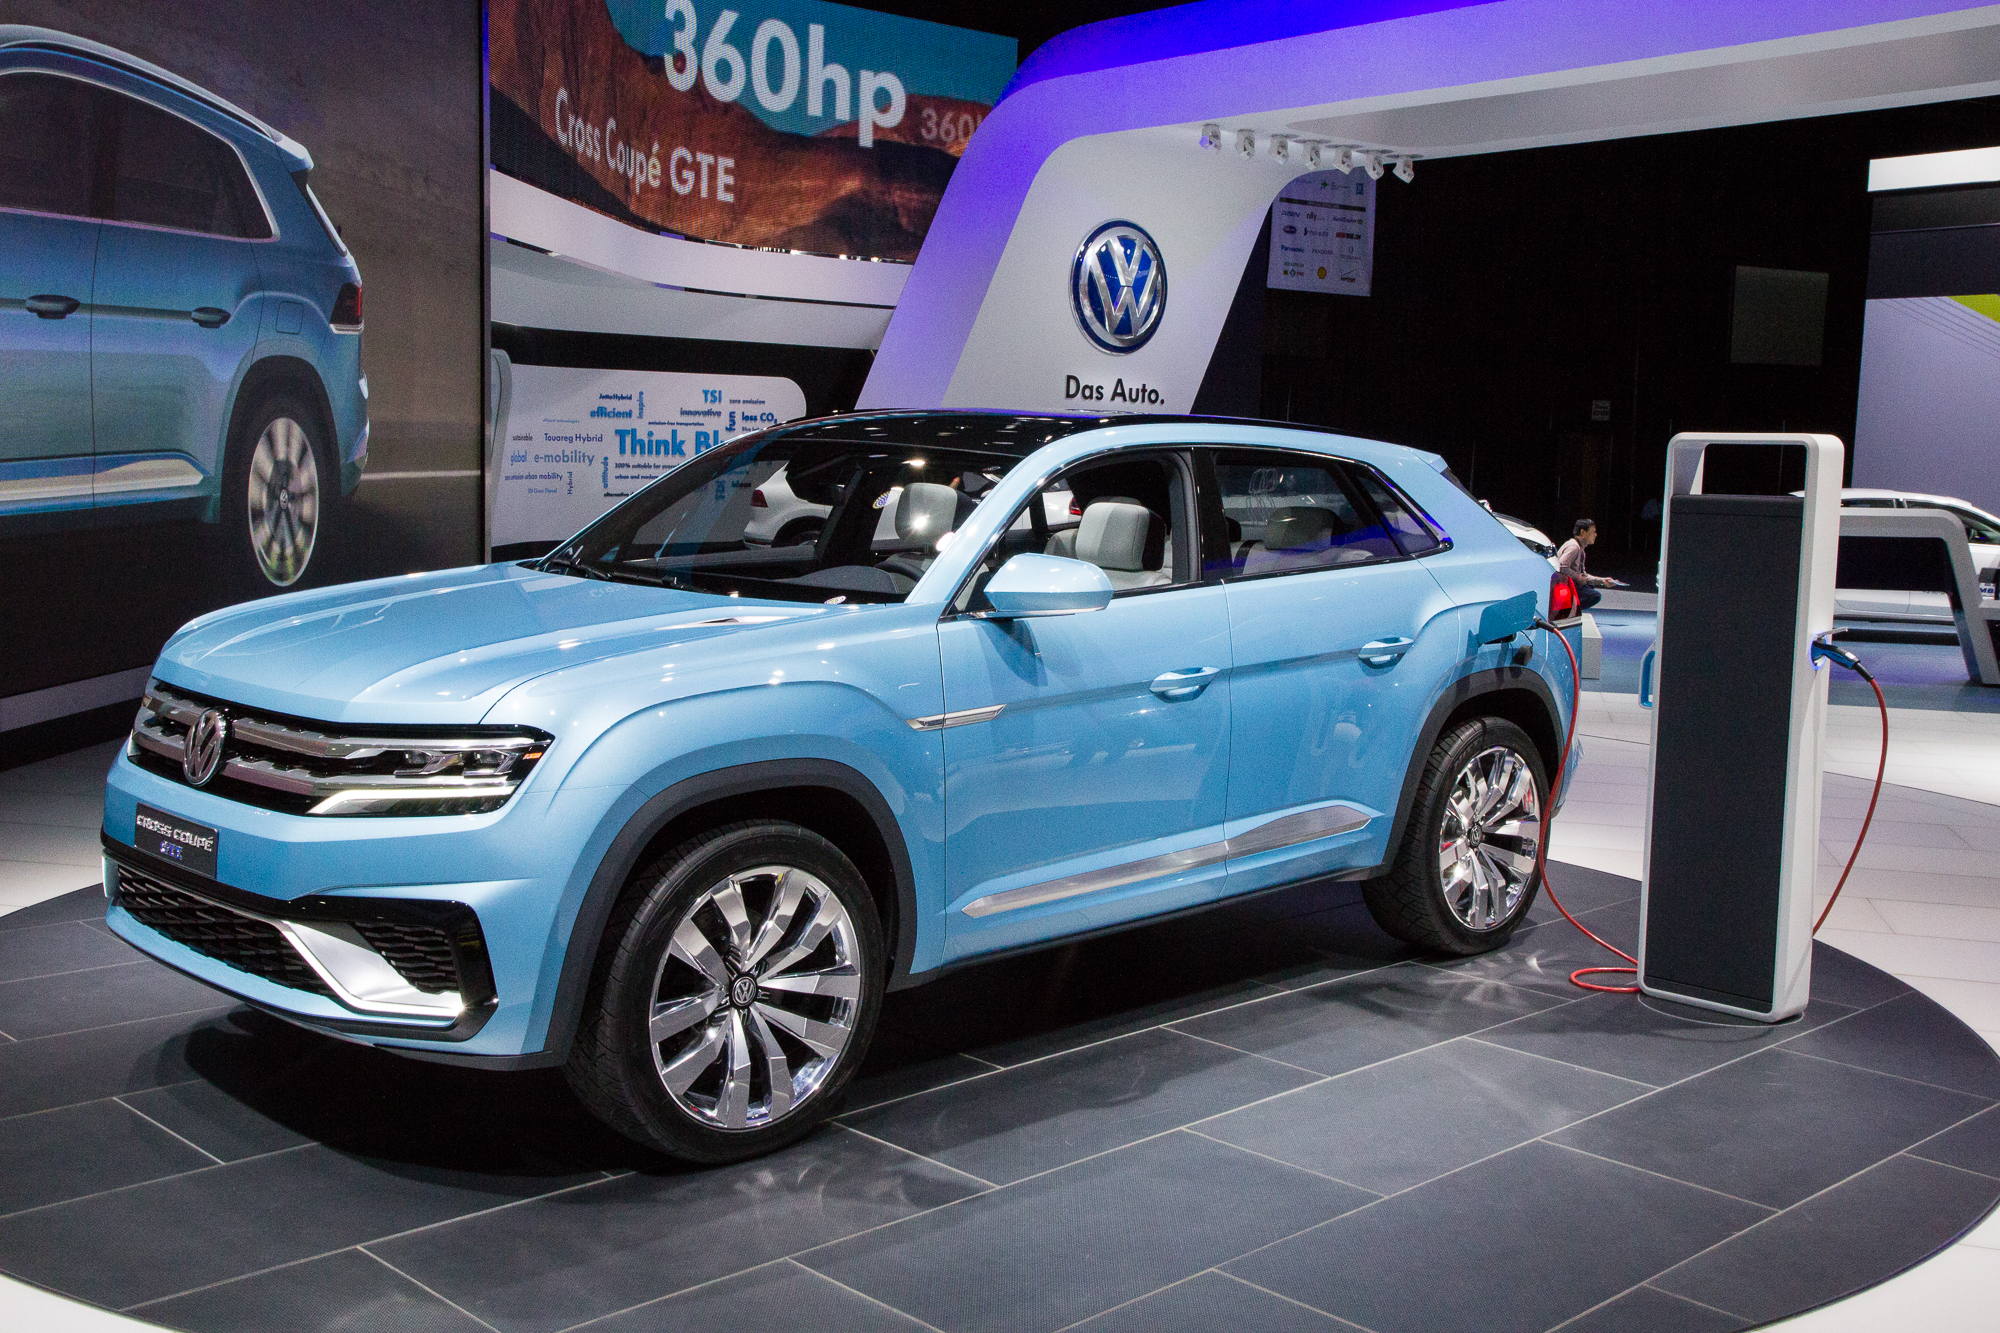 Volkswagen Cross Coupe Plug-In Hybrid Concept: Mid-Size SUV Previewed For  2016